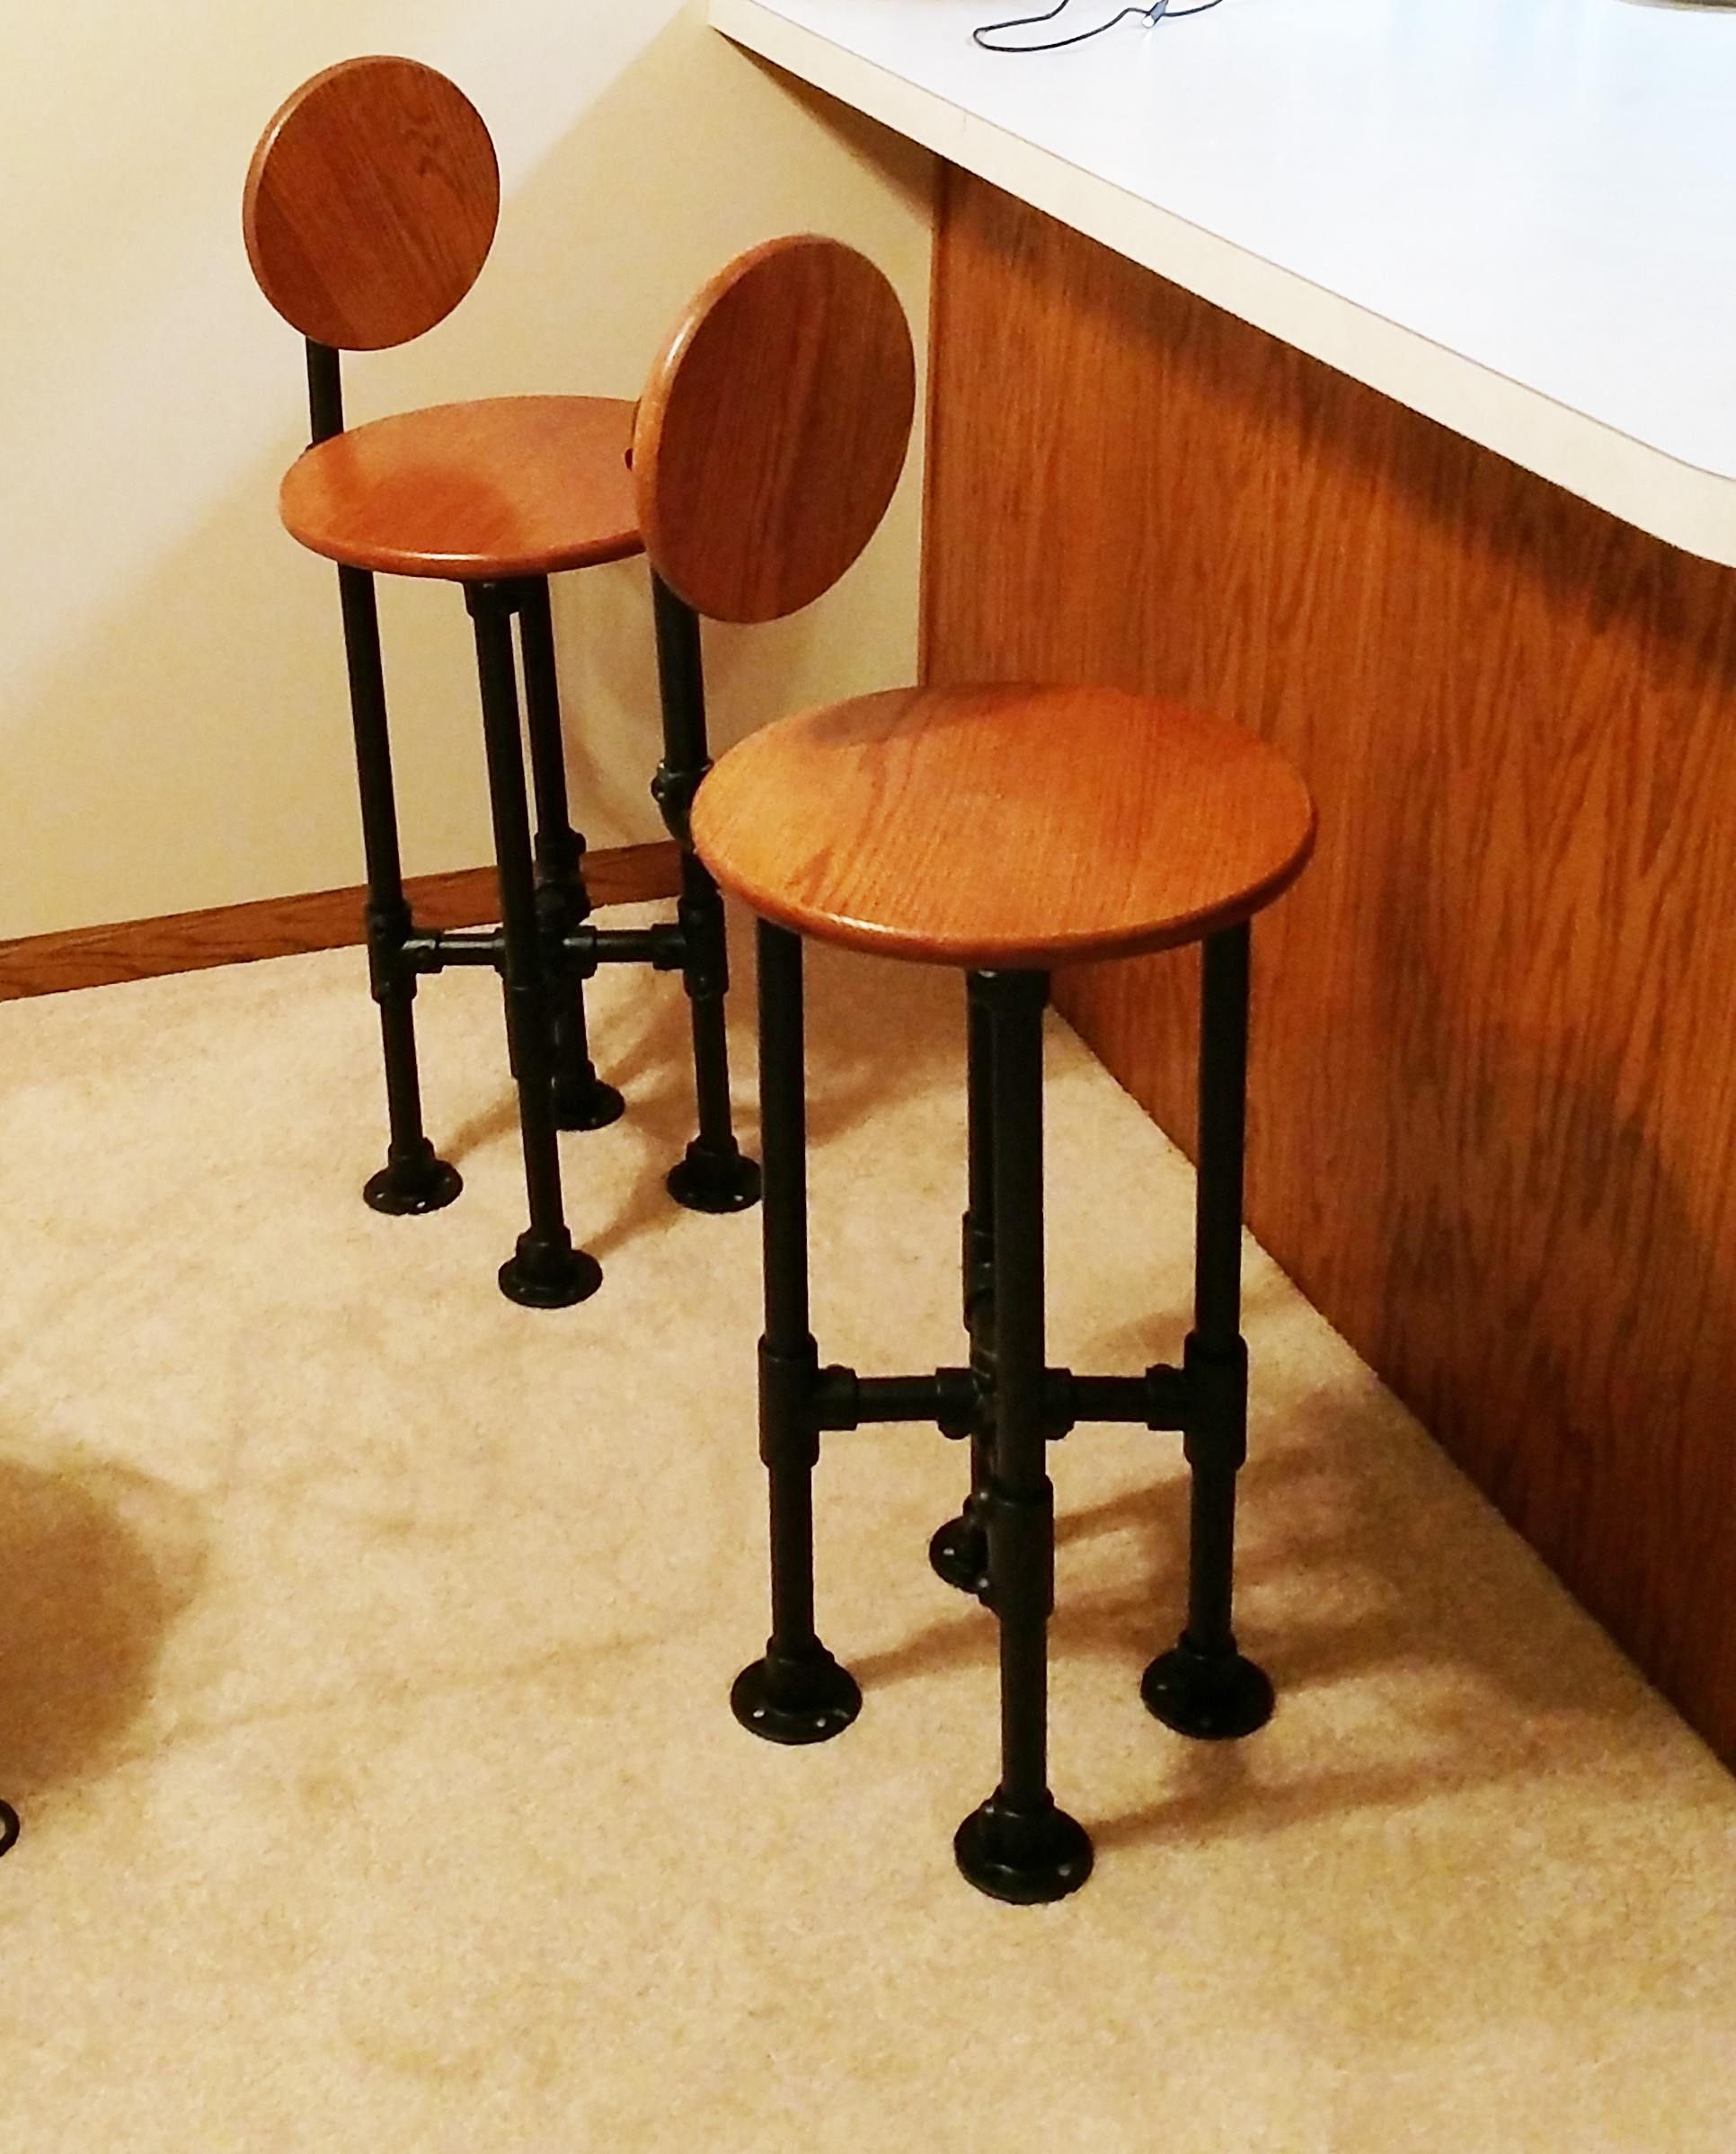 How to Build a Barstool with Pipe (DIY Step-by-Step Plans)